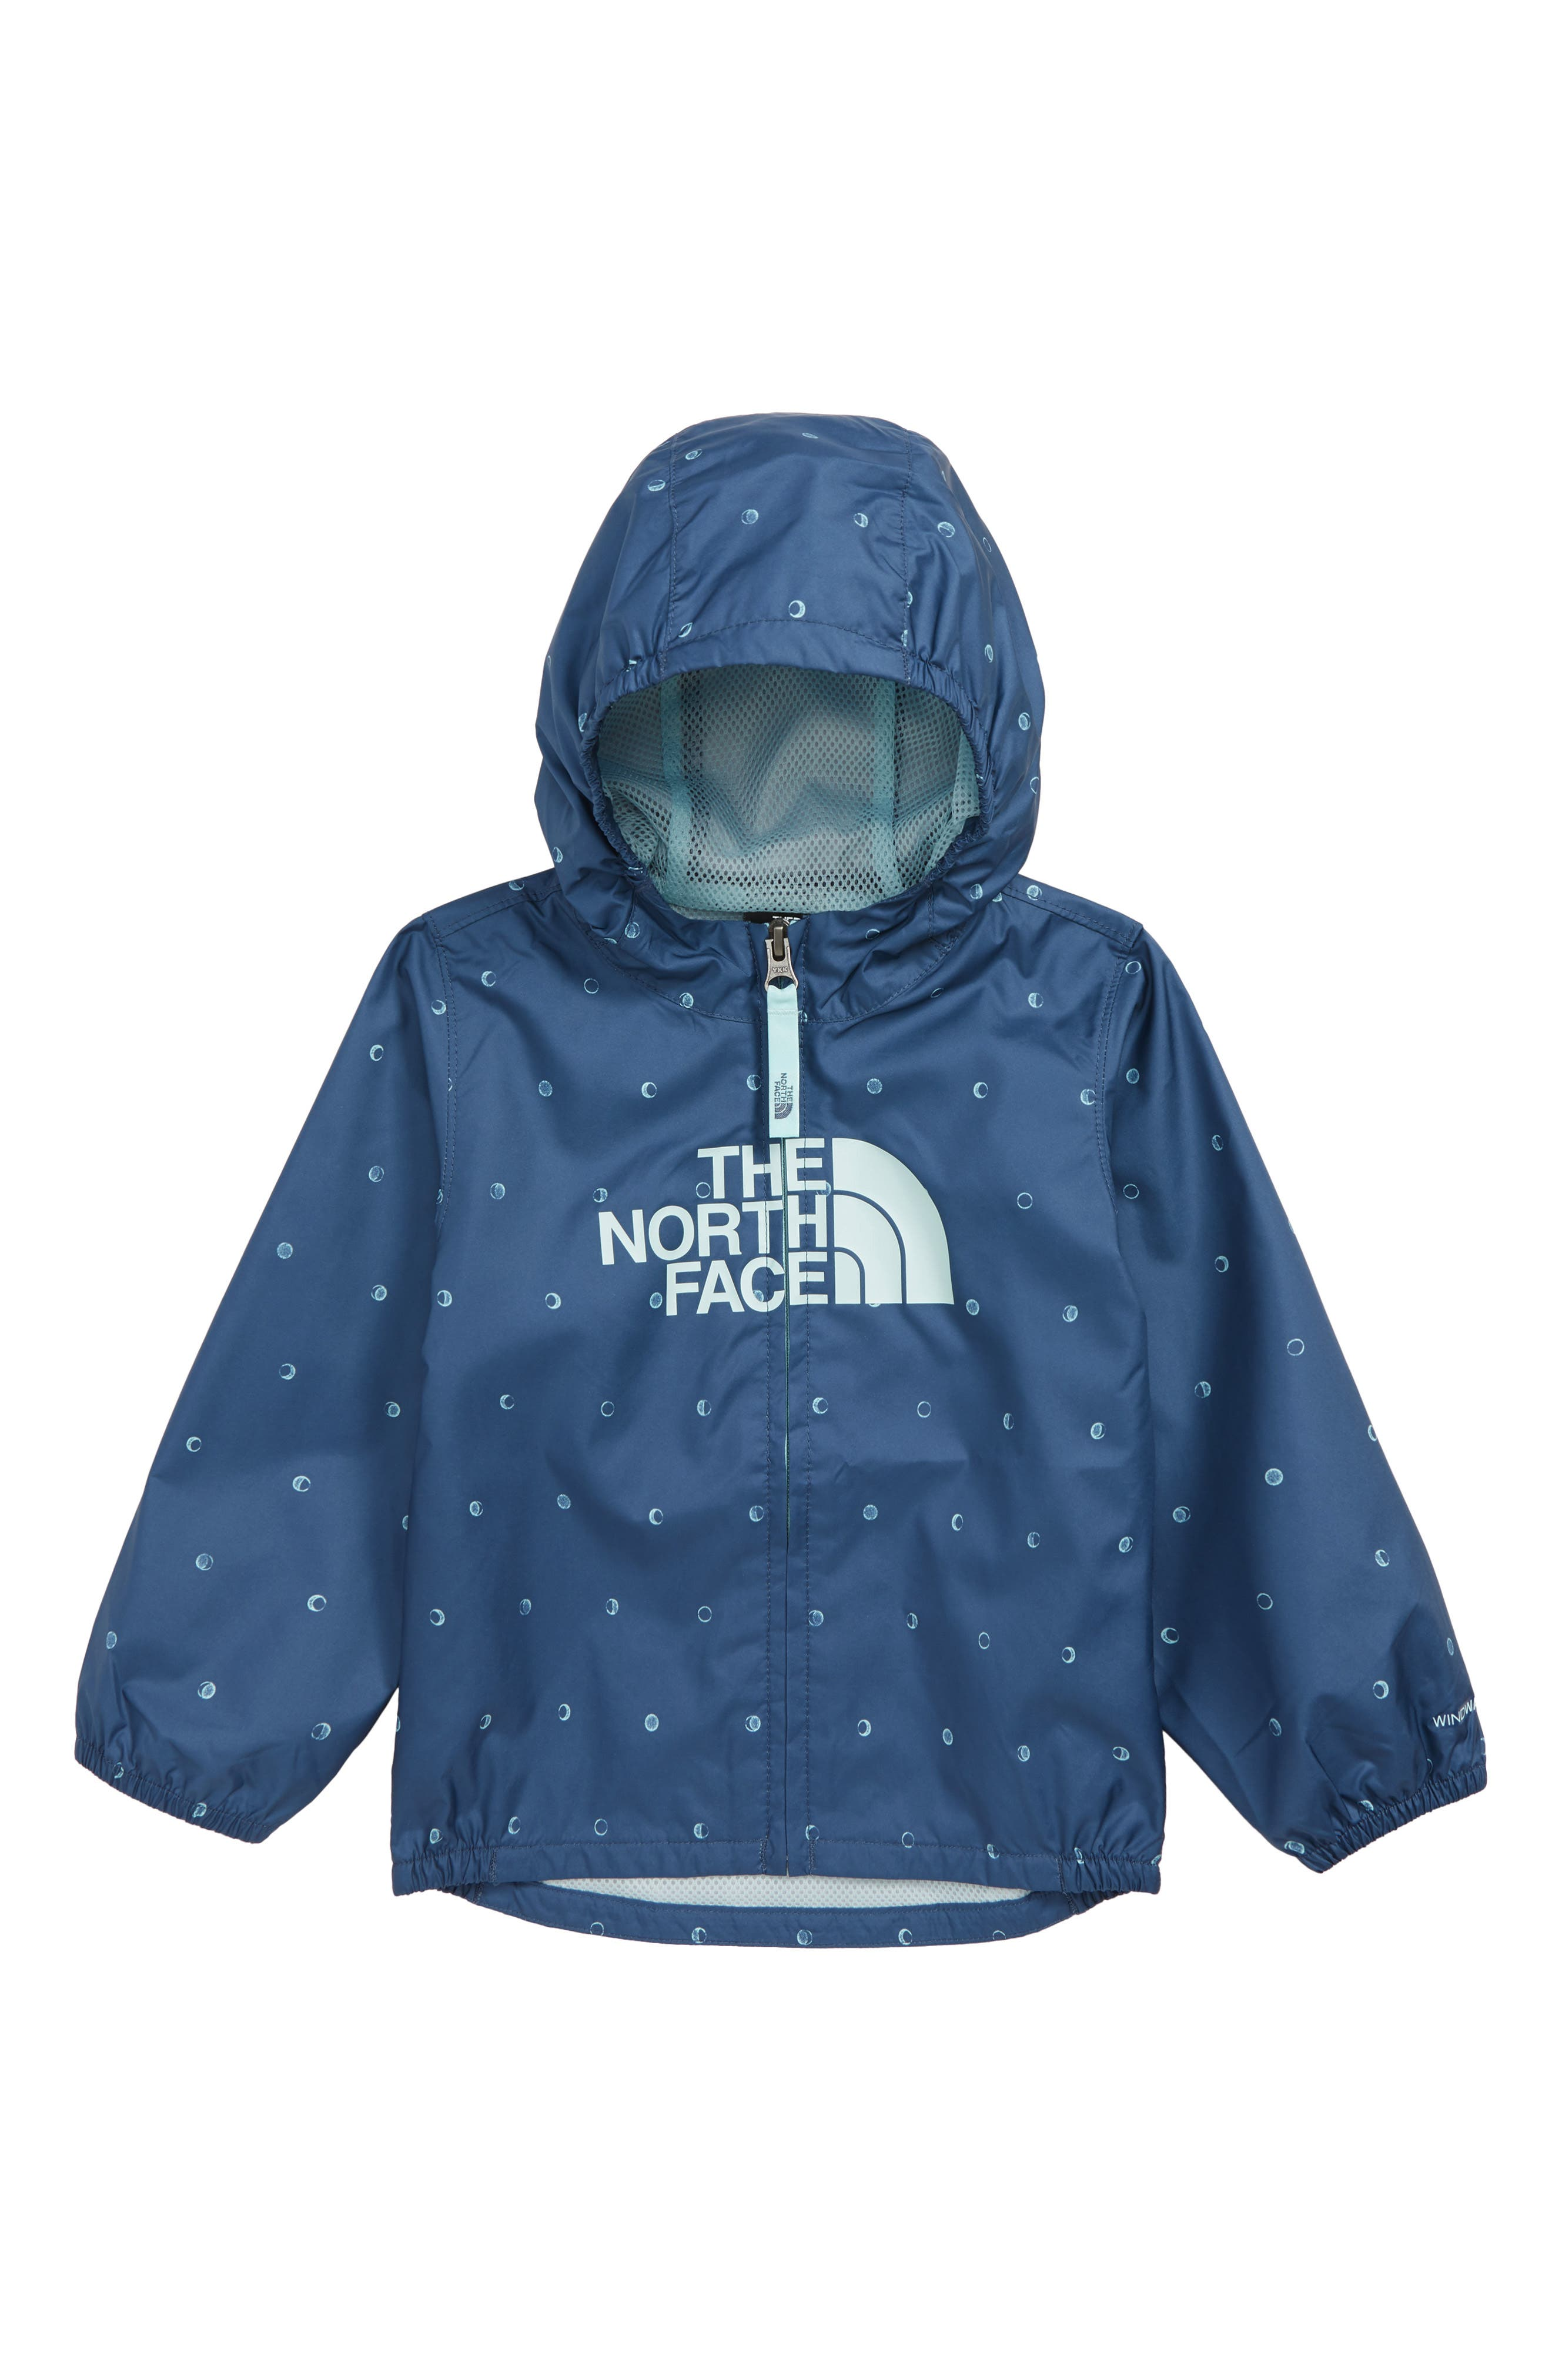 a7a64c8e46fa The North Face for Kids For Baby Boys (0-24 Months)